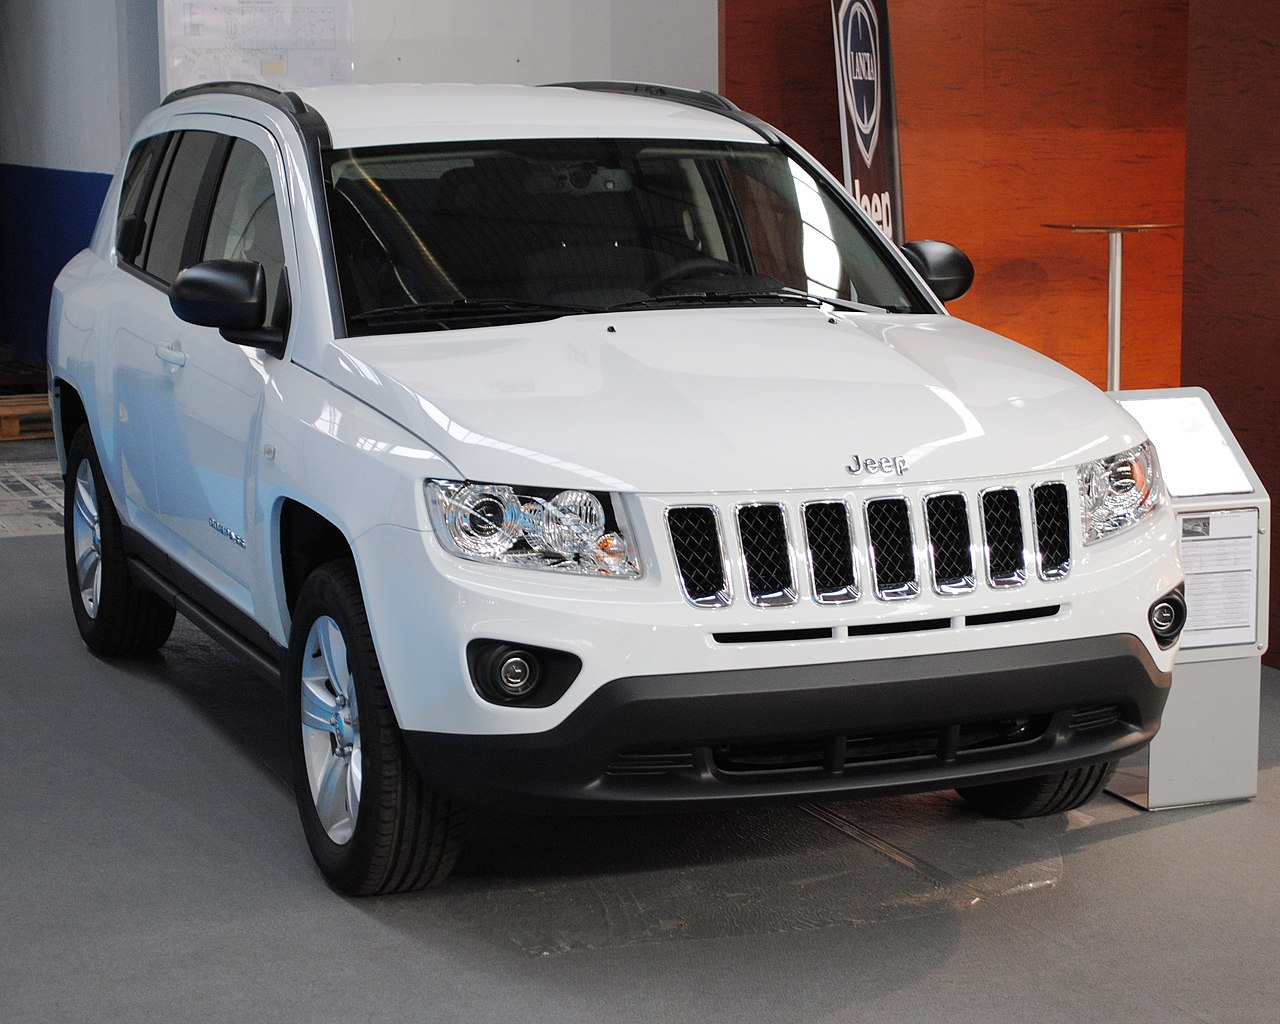 File:JEEP COMPASS, 2012, IFEVI.JPG - Wikimedia Commons